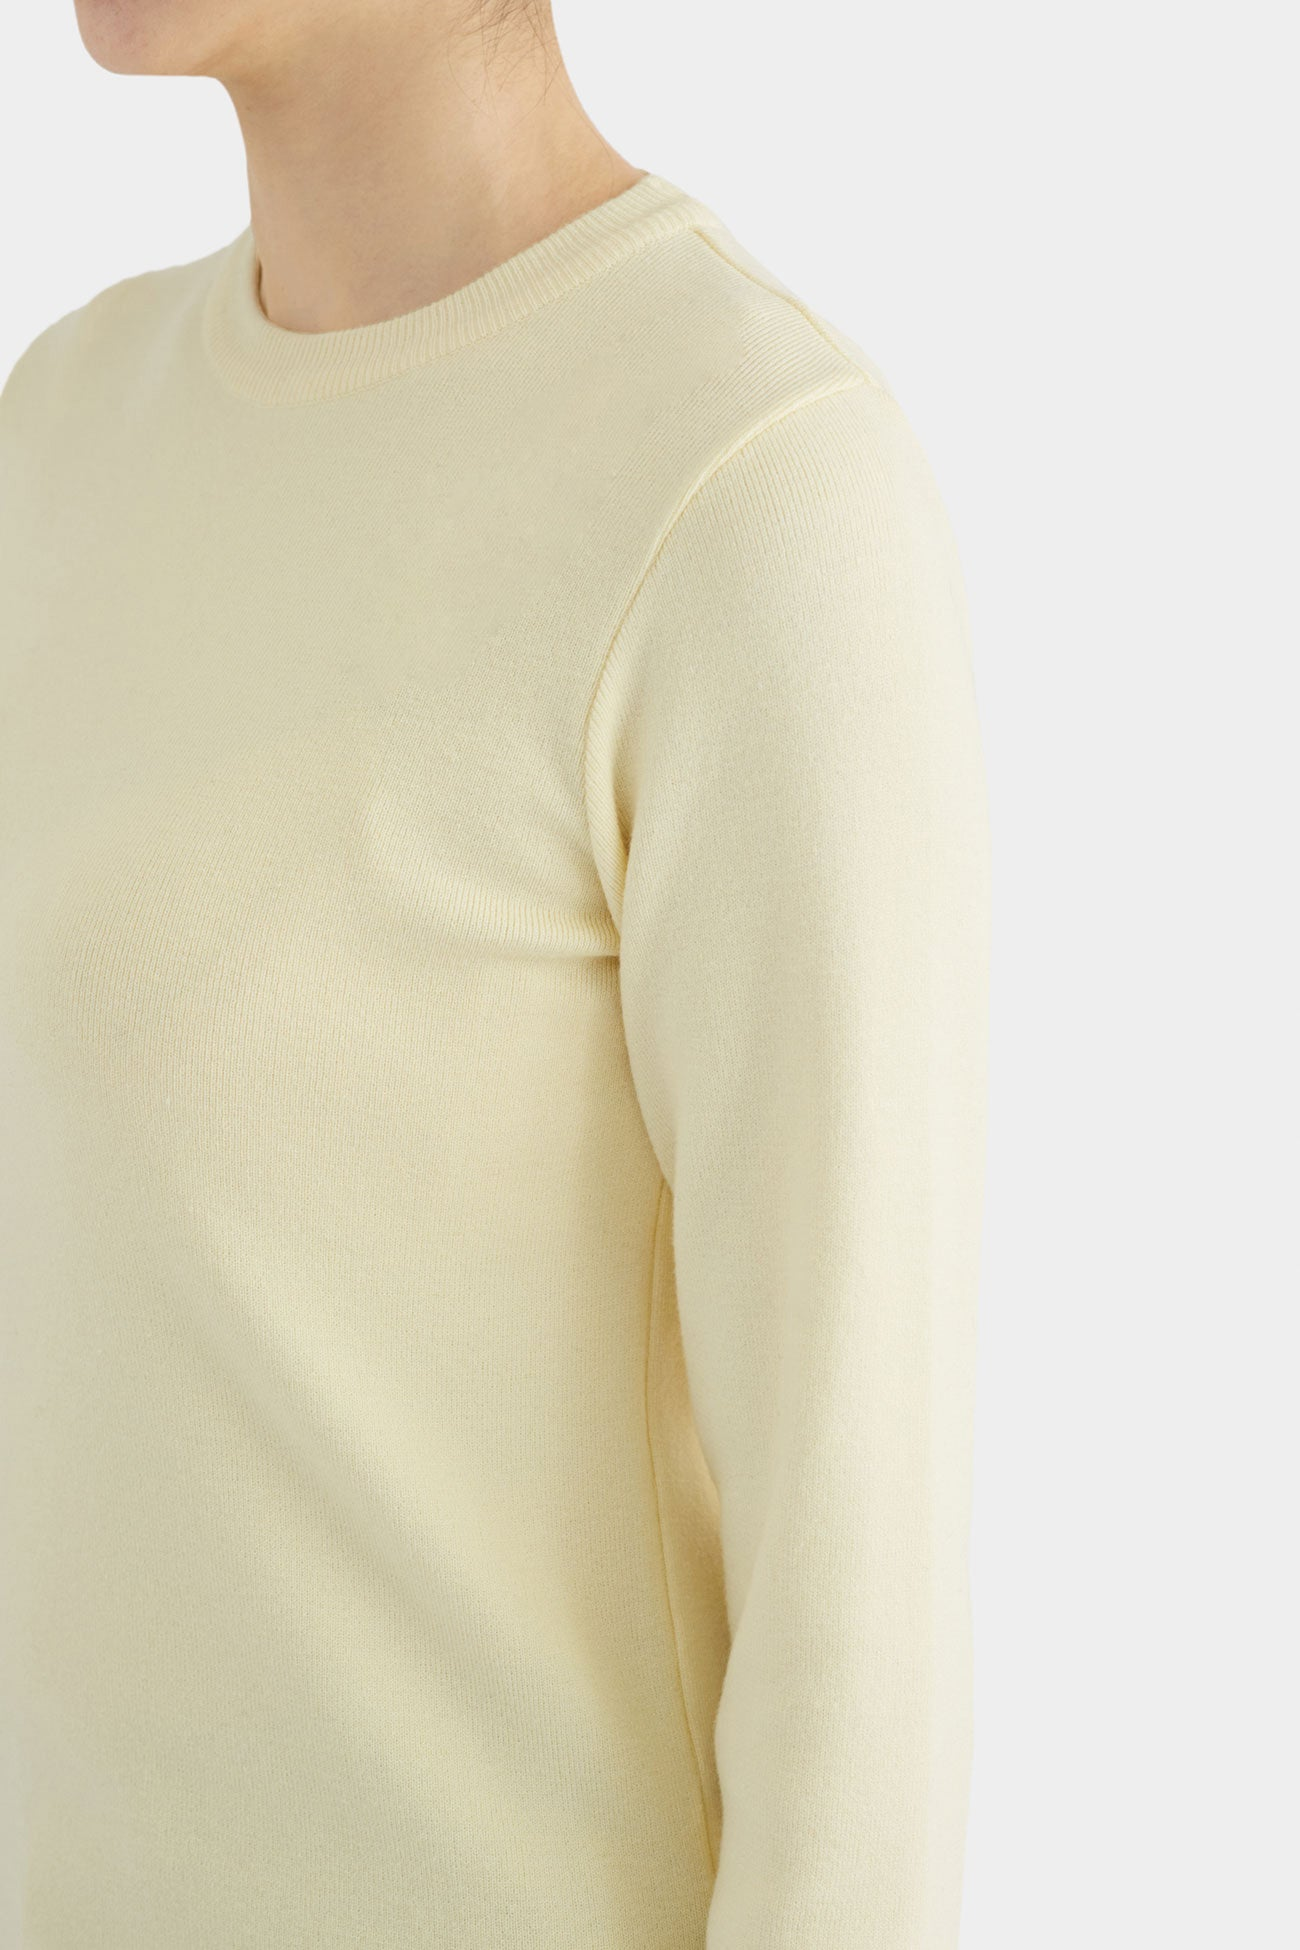 BANANA MAUD SIMPLE CREWNECK